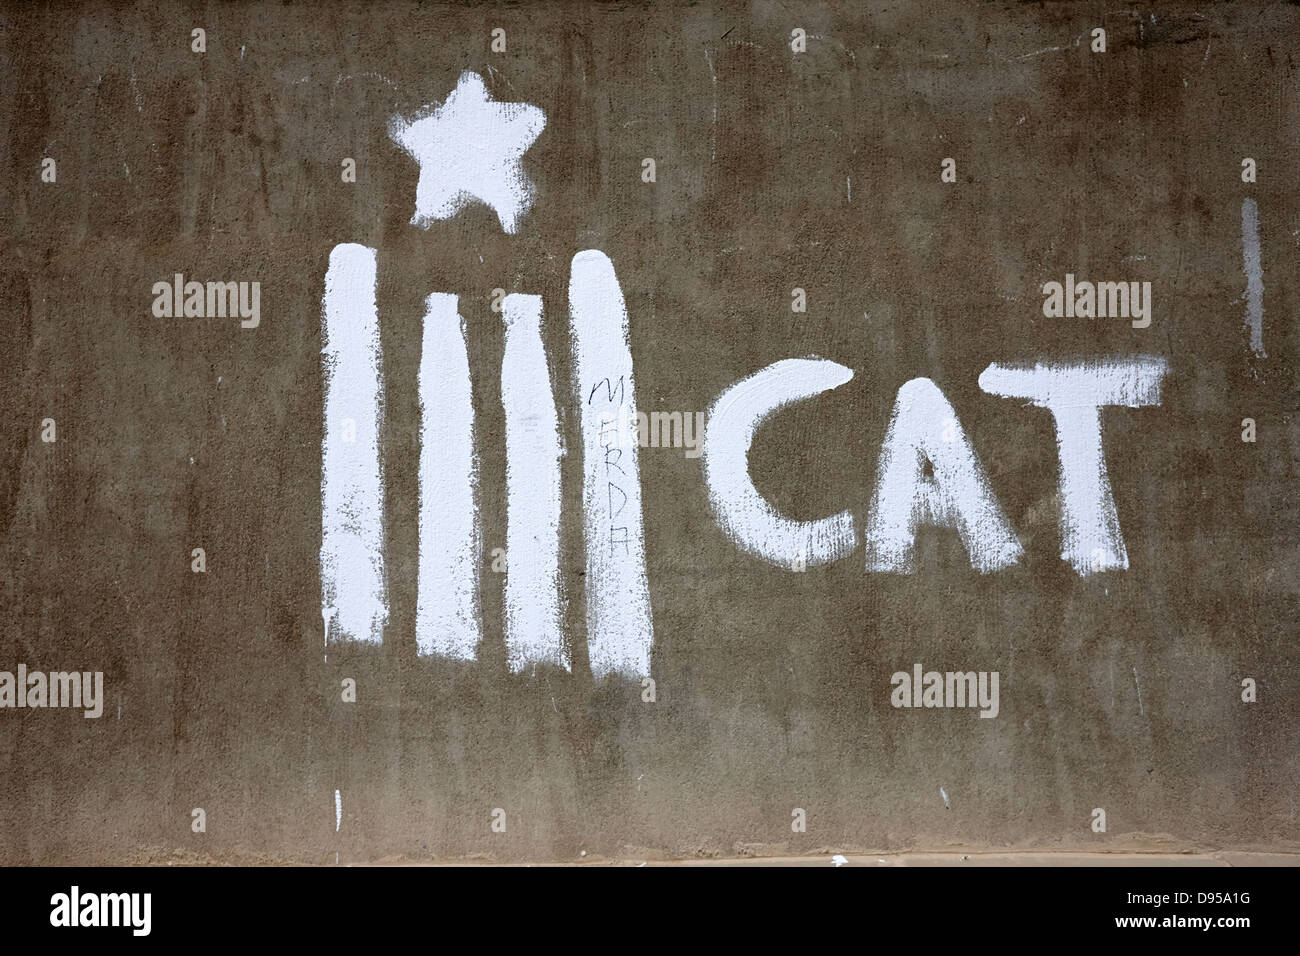 catalonian independence grafitti on a wall in baga catalonia spain - Stock Image